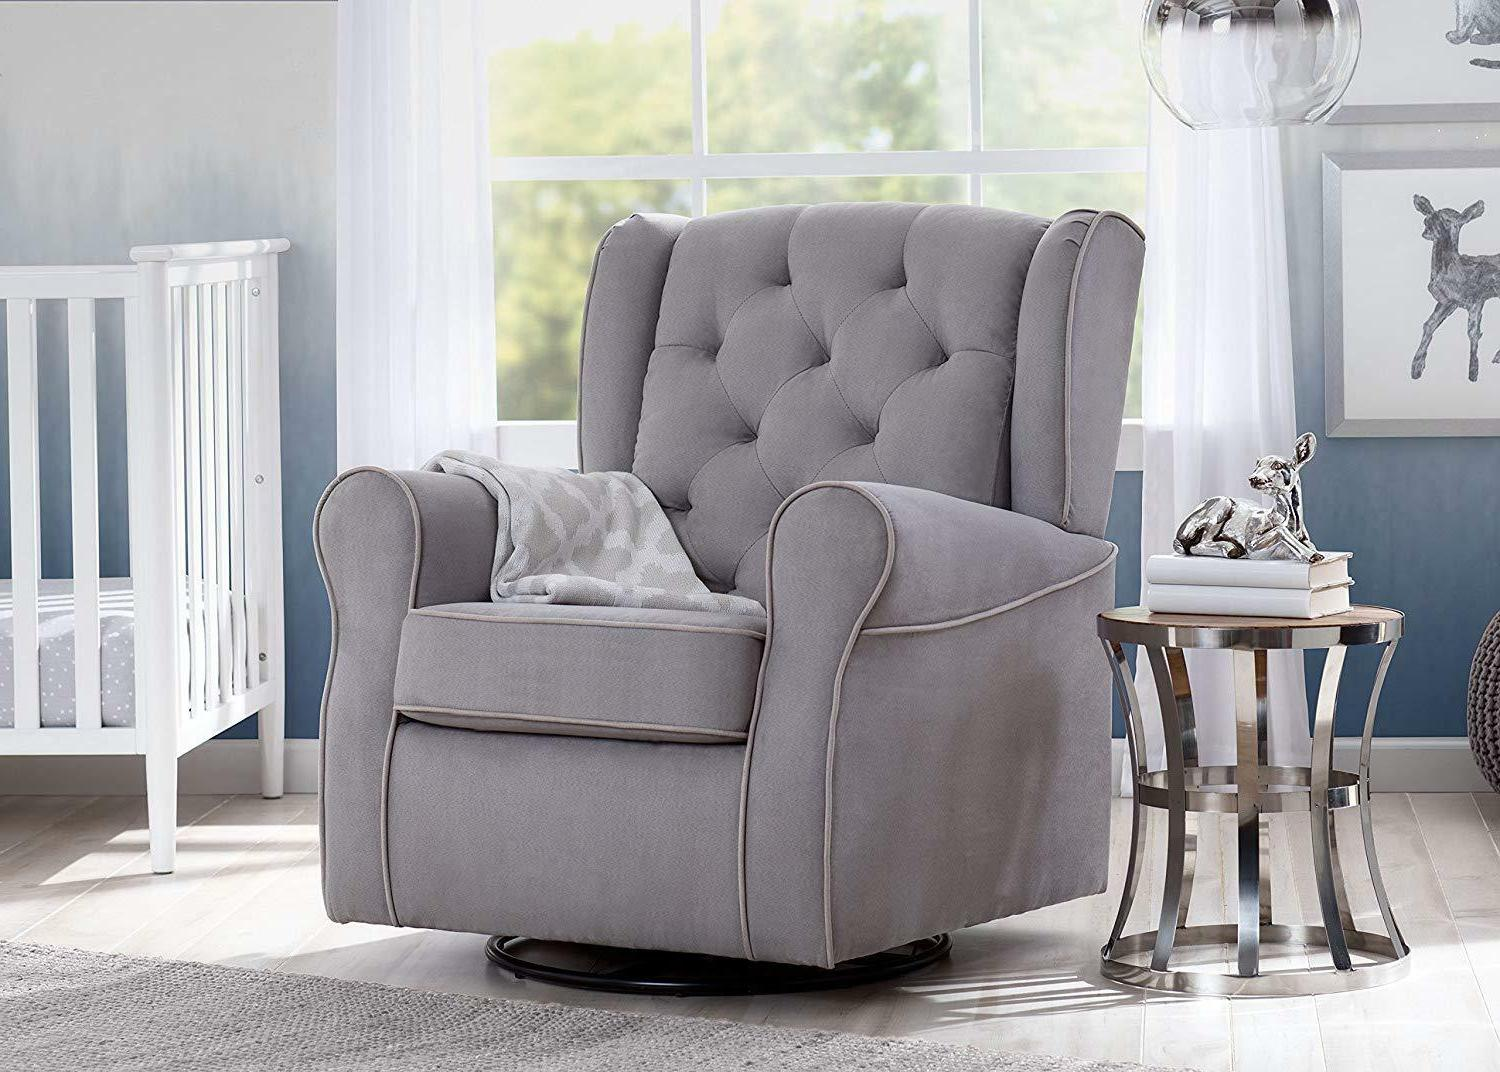 Delta Upholstered Glider Swivel Dove Grey with